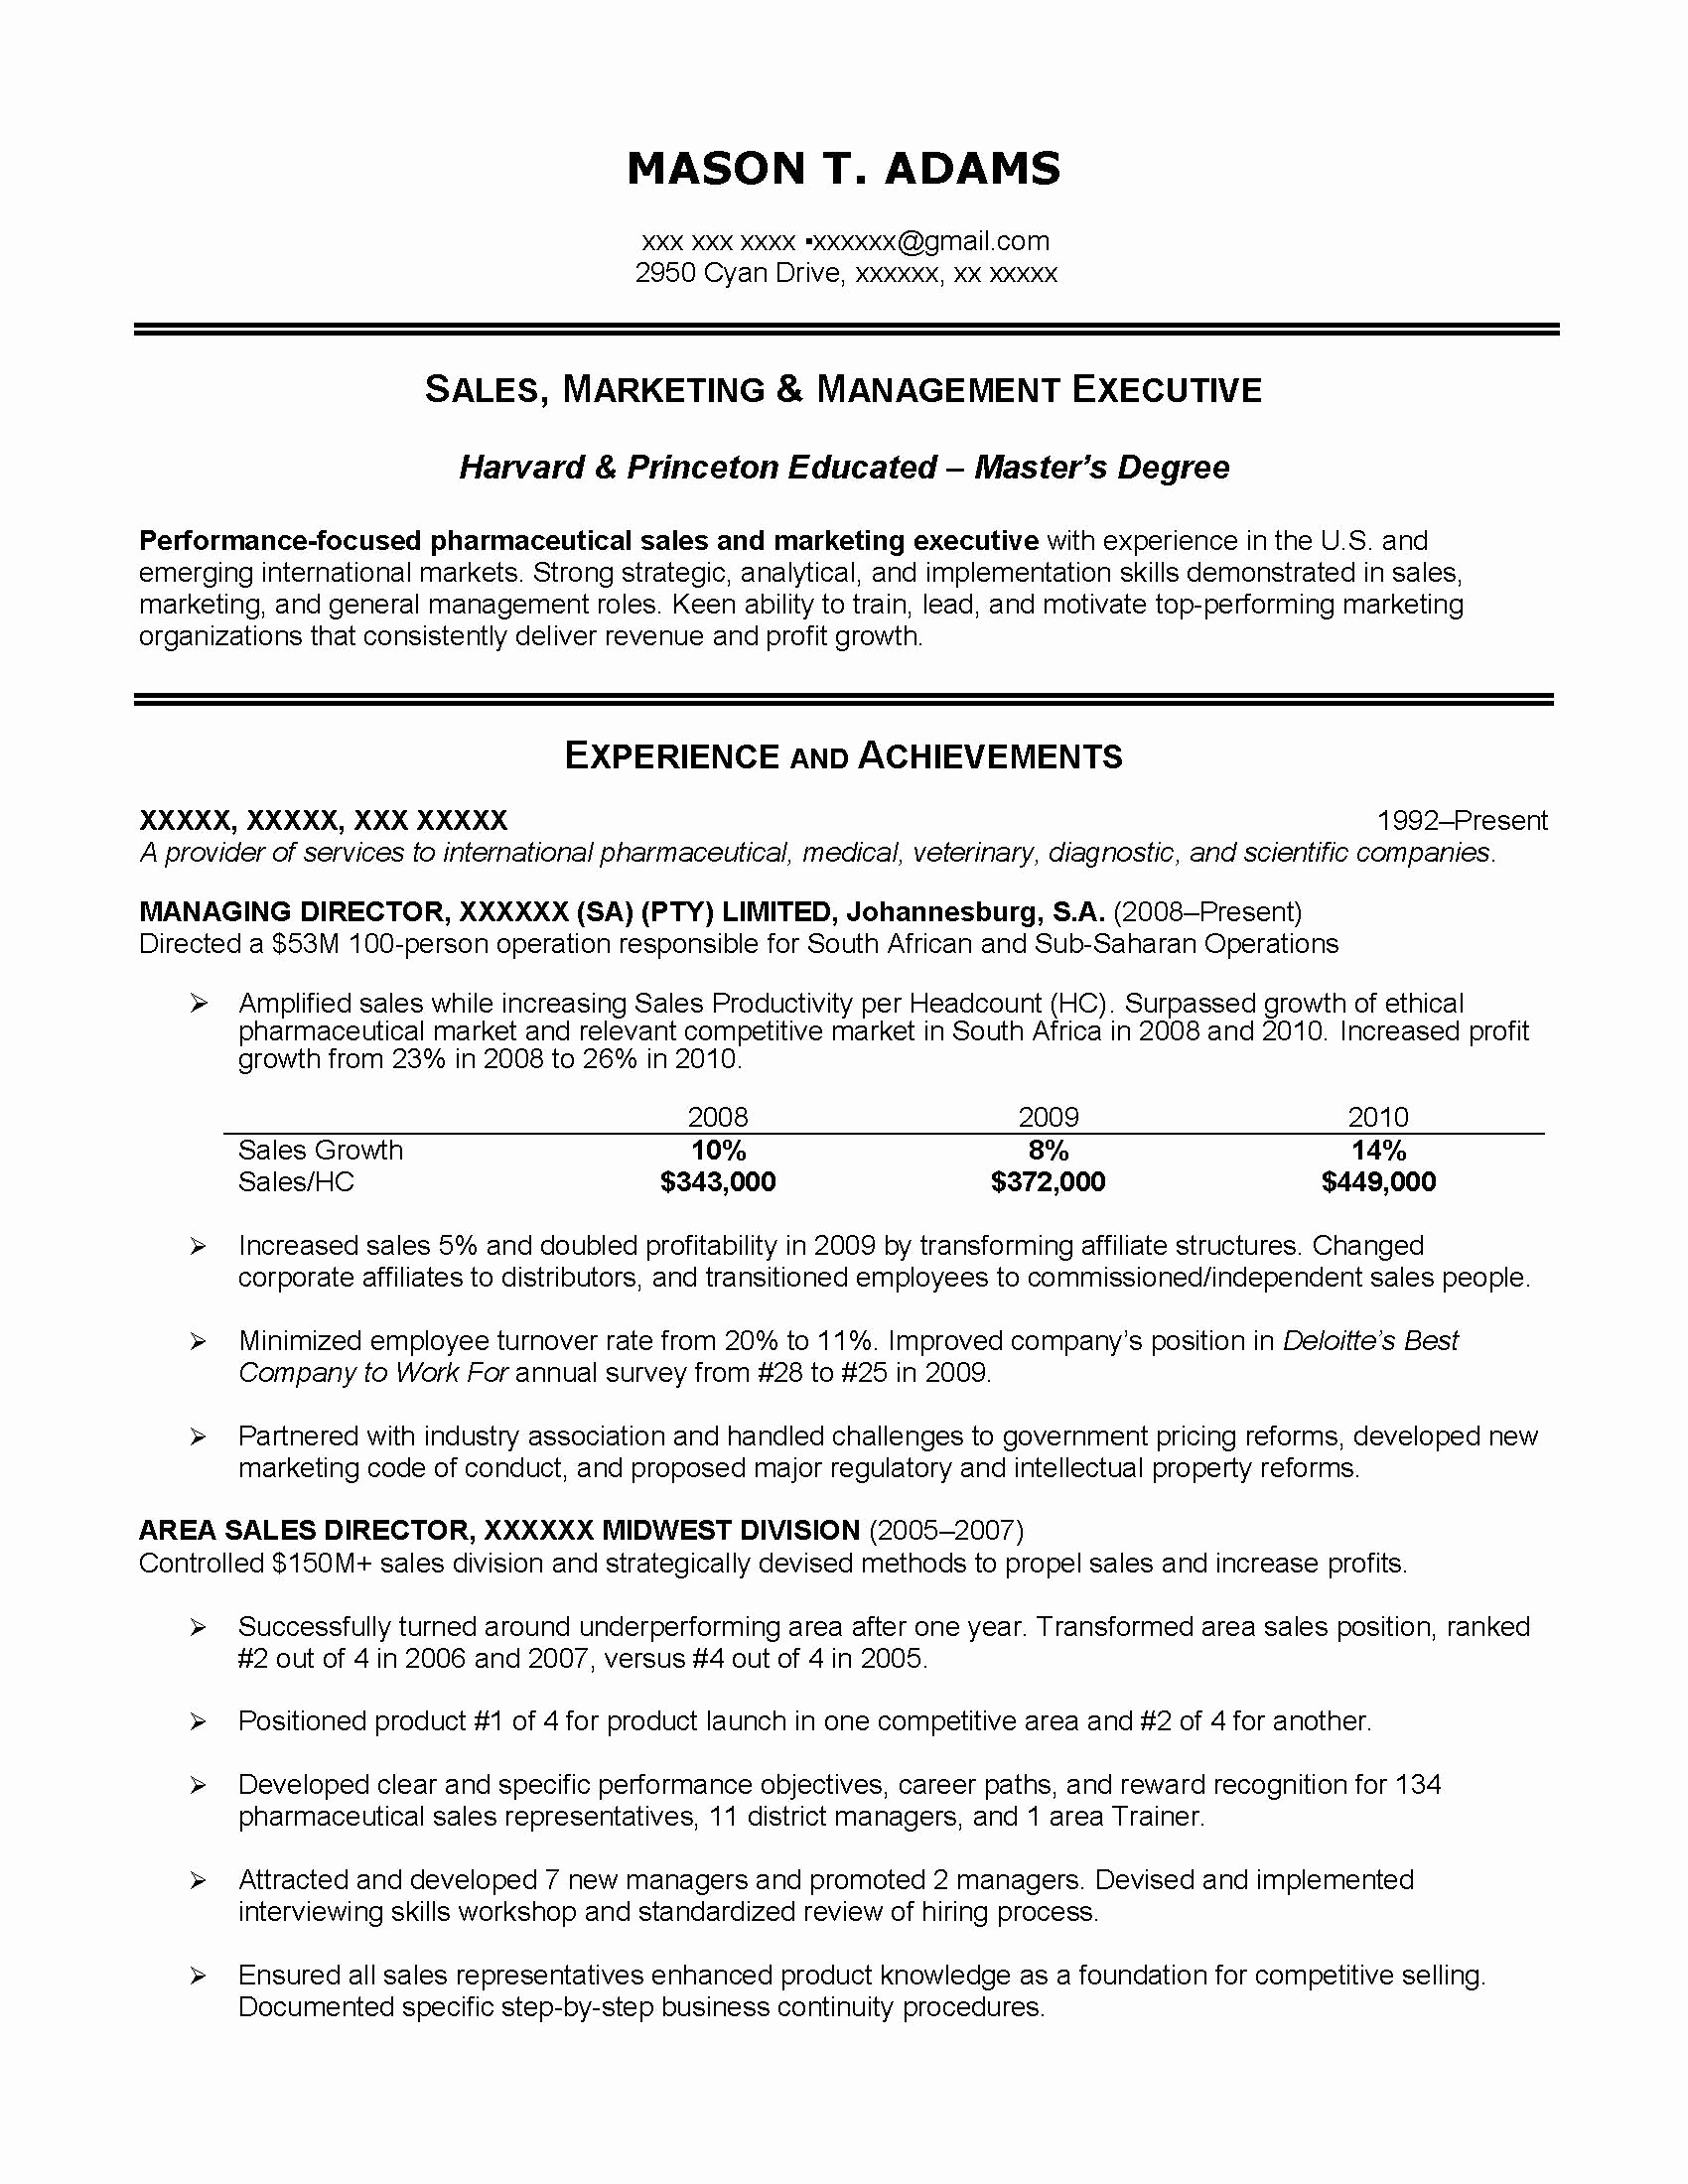 Princeton Resume Template - Sales Manager Resumes Samples Sales Manager Resume Examples Fresh